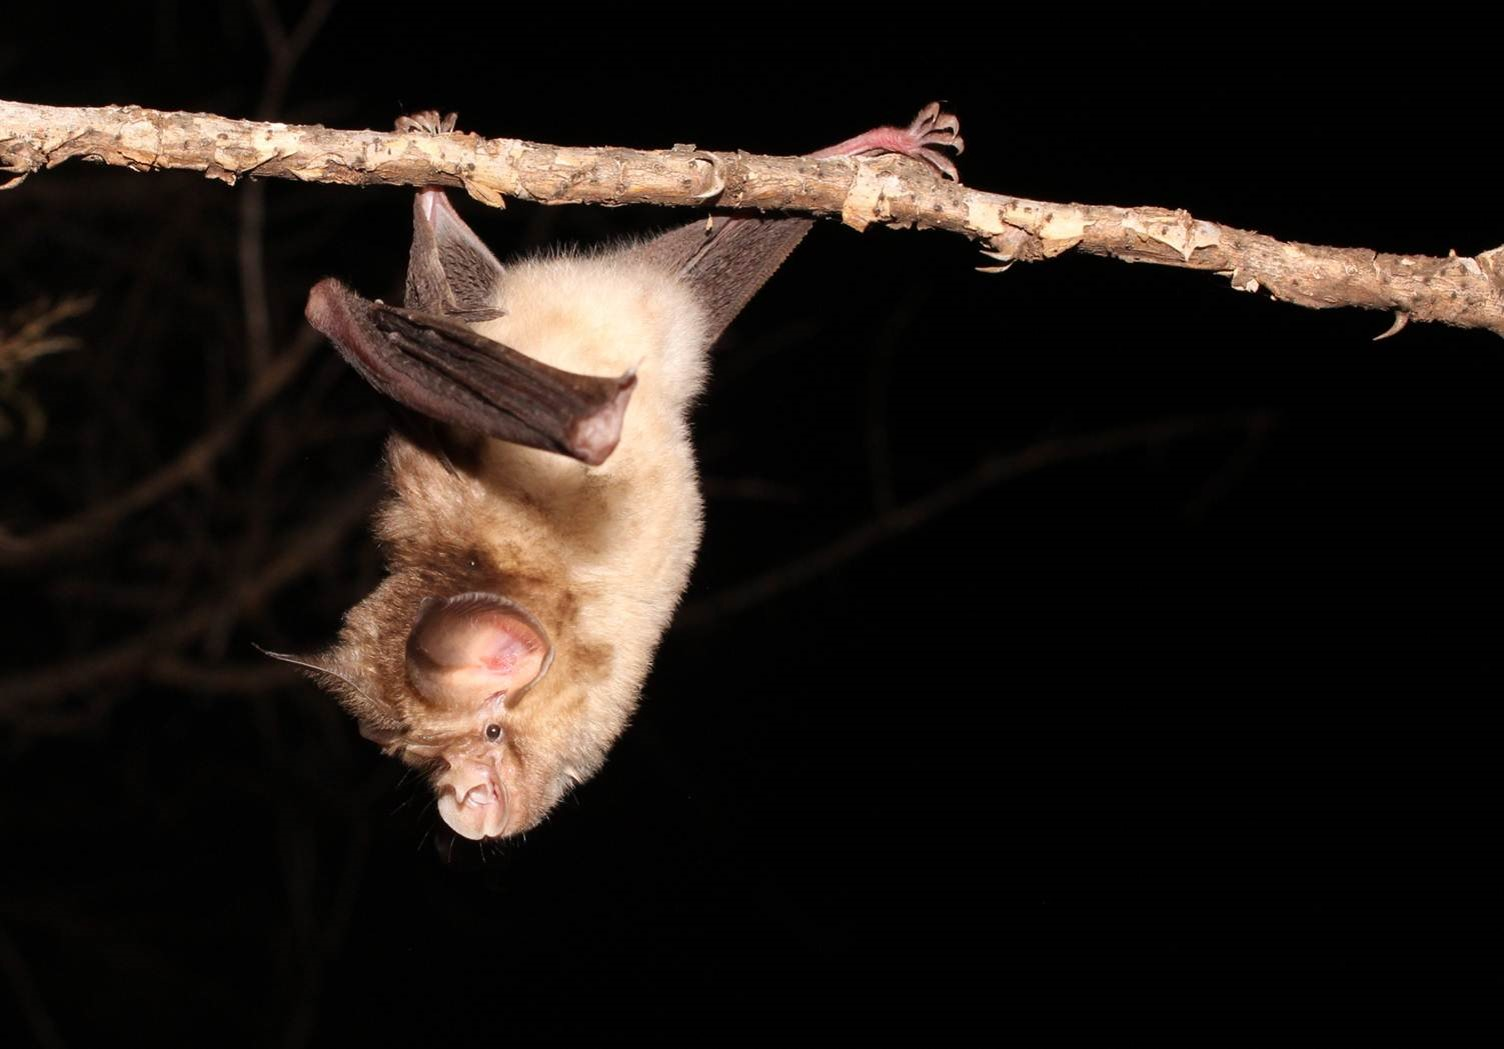 A Horseshoe bat on a branch